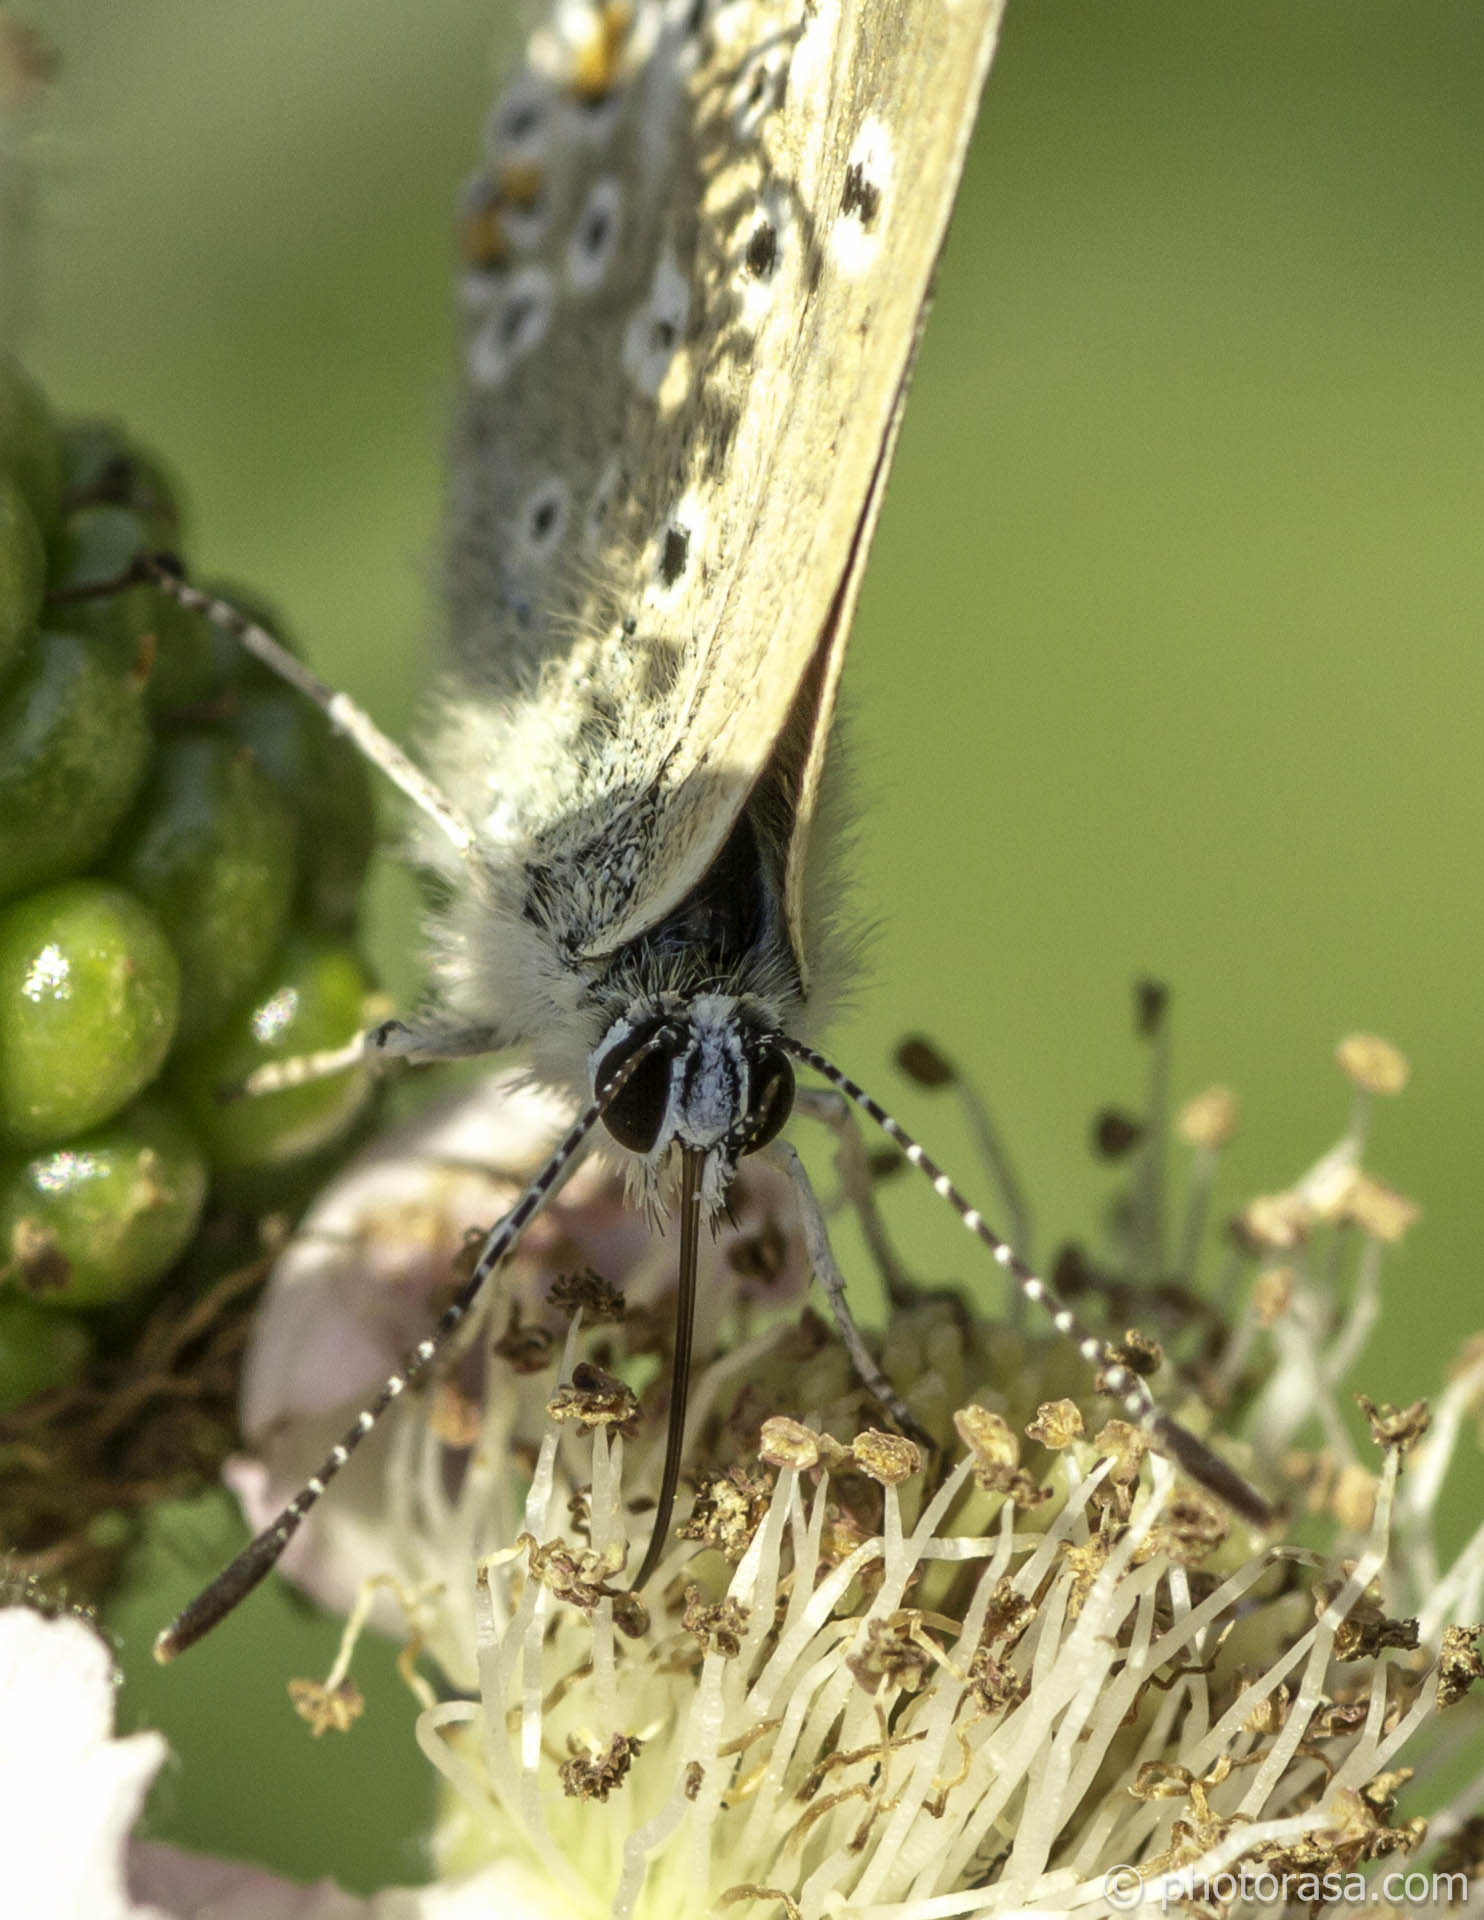 https://photorasa.com/common-blue-butterfly/female-common-blue-proboscis/